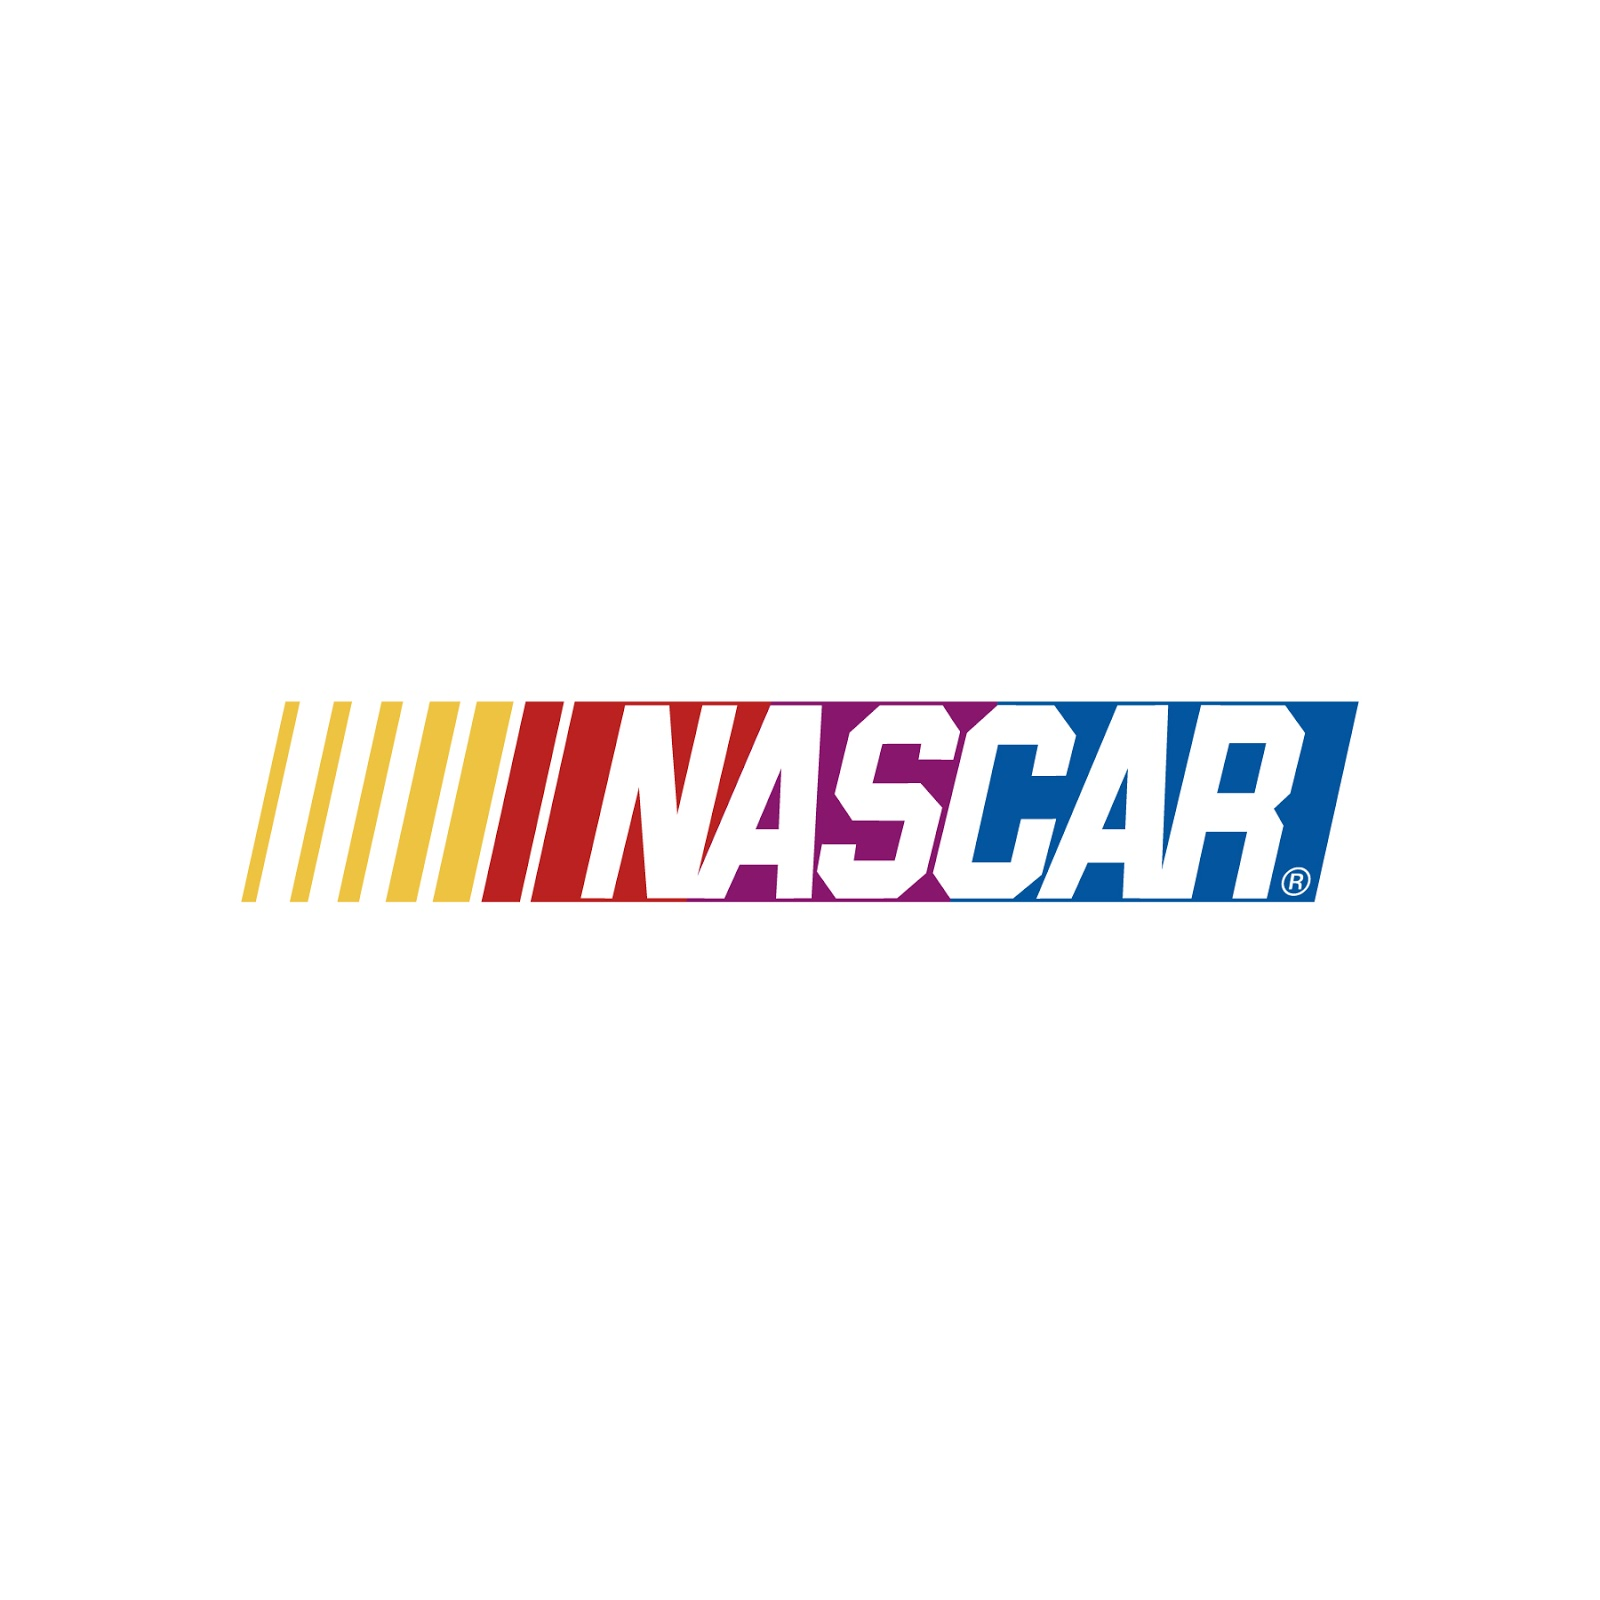 Winning The NASCAR Communications Race…